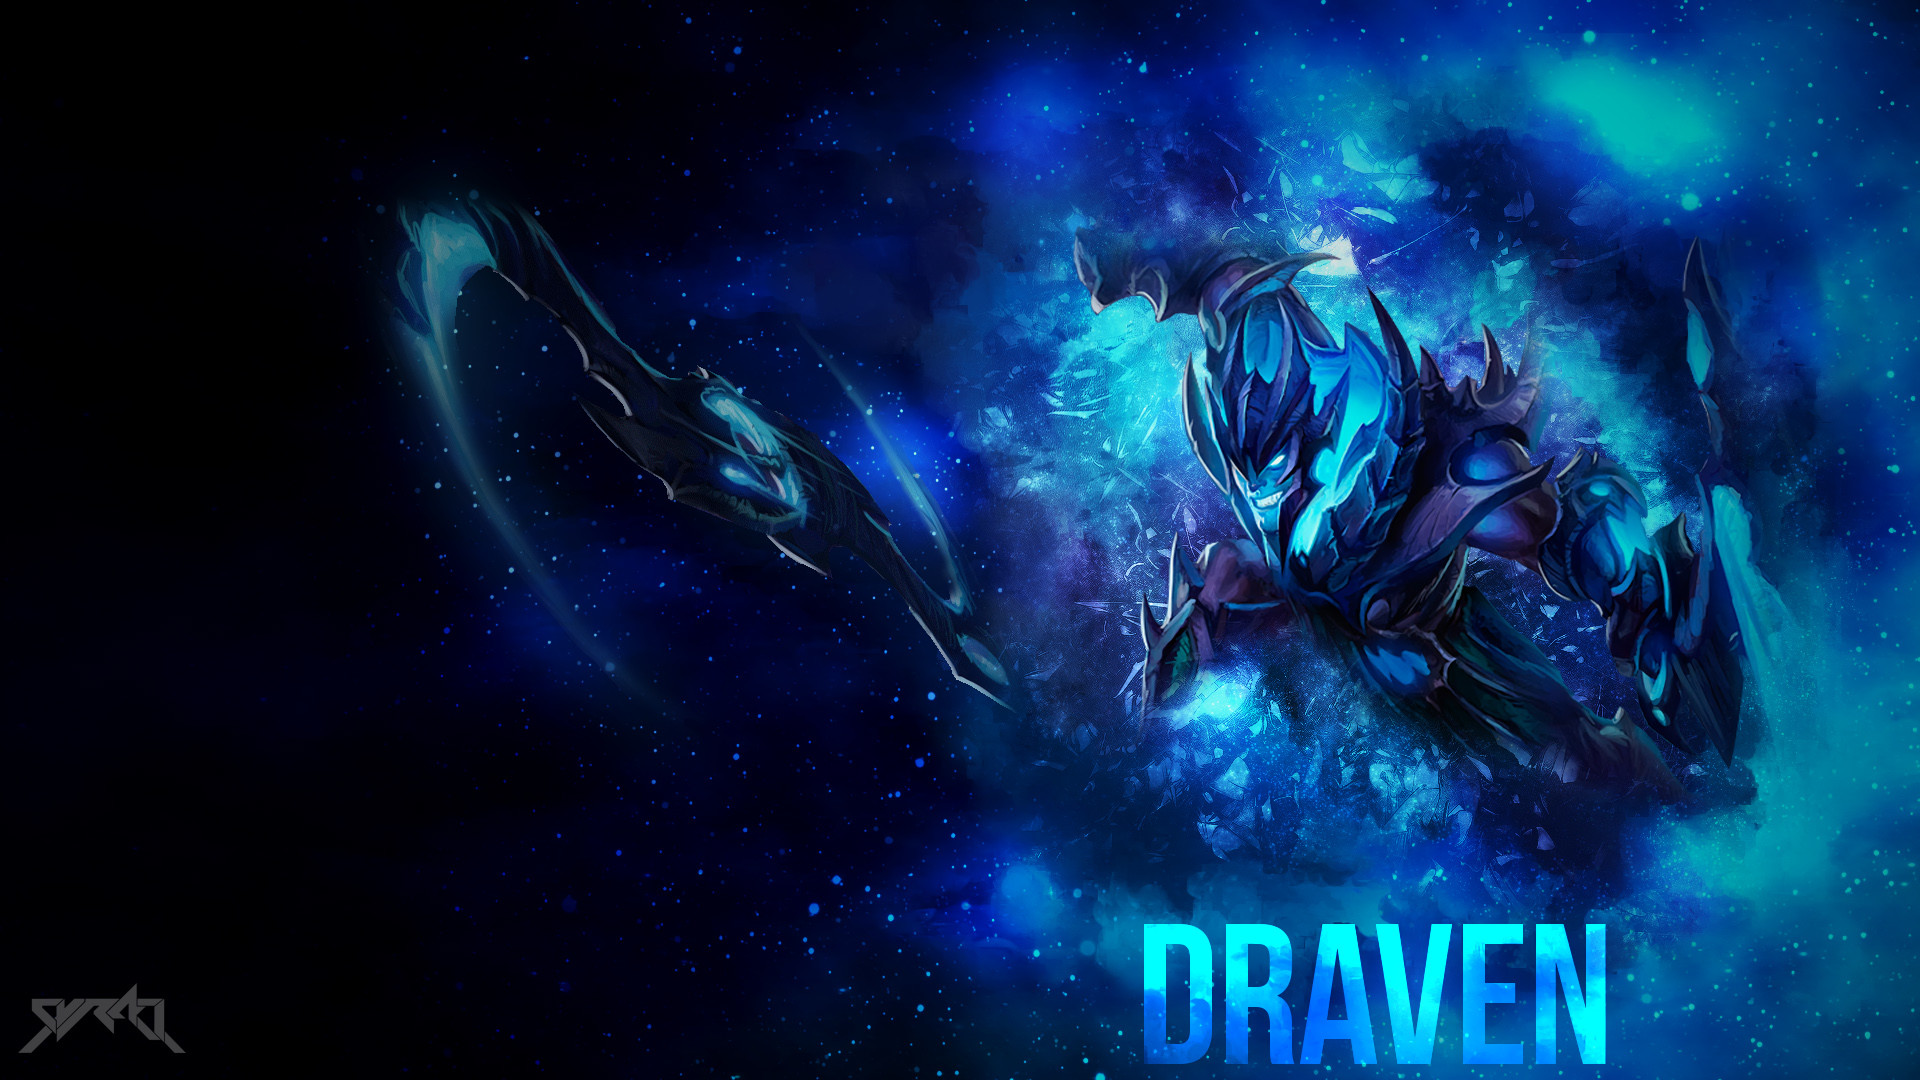 1920x1080 Soul Reaver Draven by syraelx HD Wallpaper Fan Art Artwork League of  Legends lol